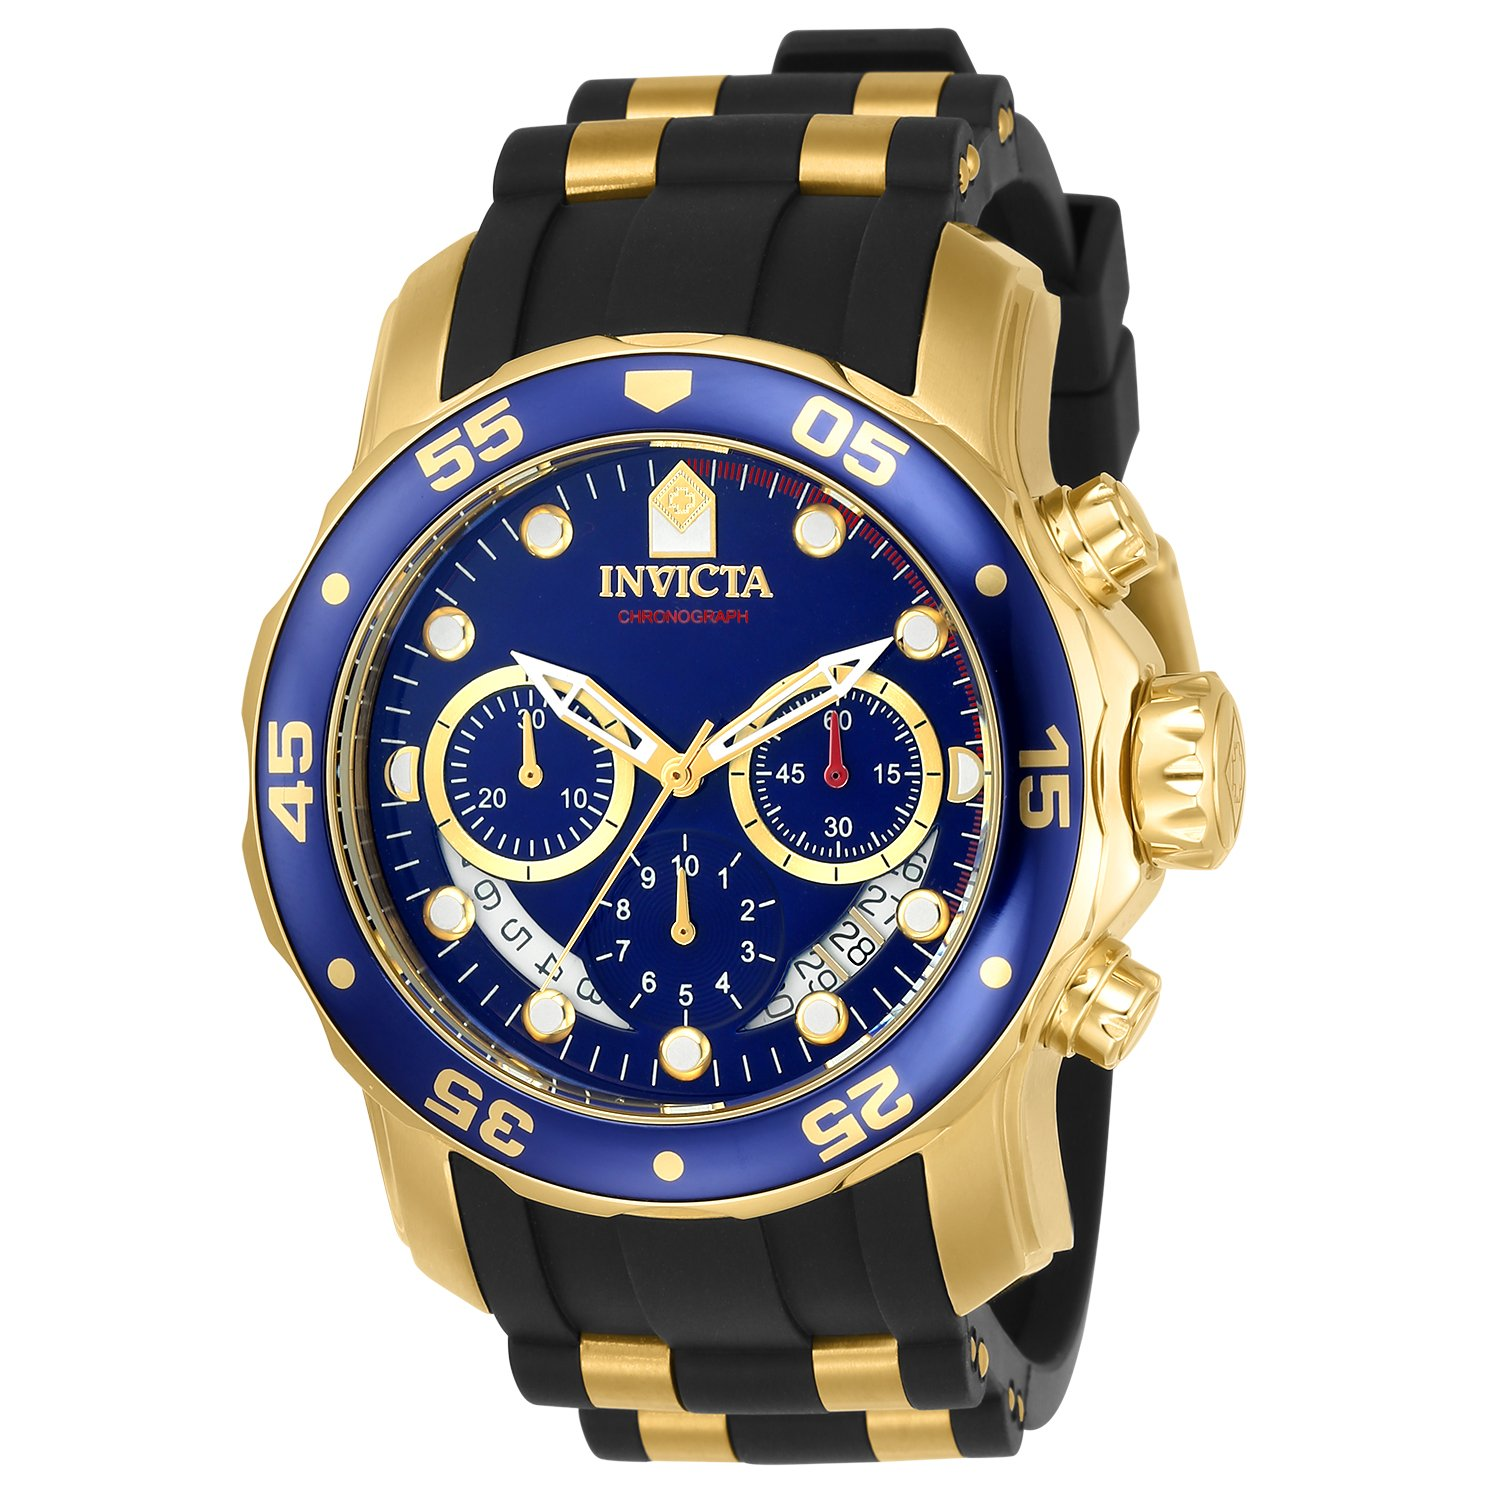 ac5b7fbb071 Amazon.com  Invicta Men s 6983 Pro Diver Collection Chronograph Blue Dial  Black Polyurethane Watch  Invicta  Watches